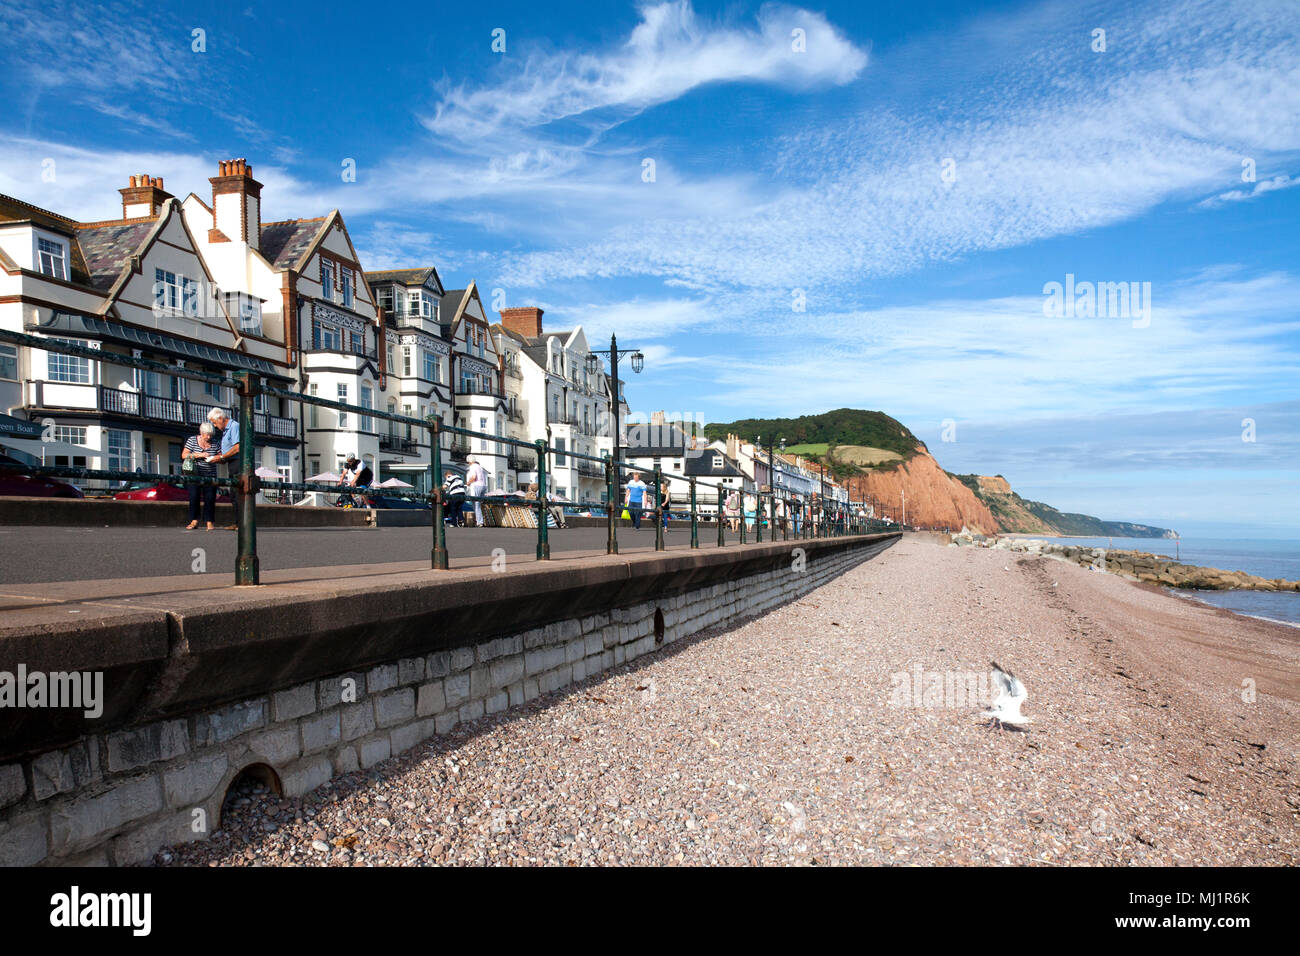 Hotels and Esplanade at Beachfront, Sidmouth, East Devon, England - Stock Image